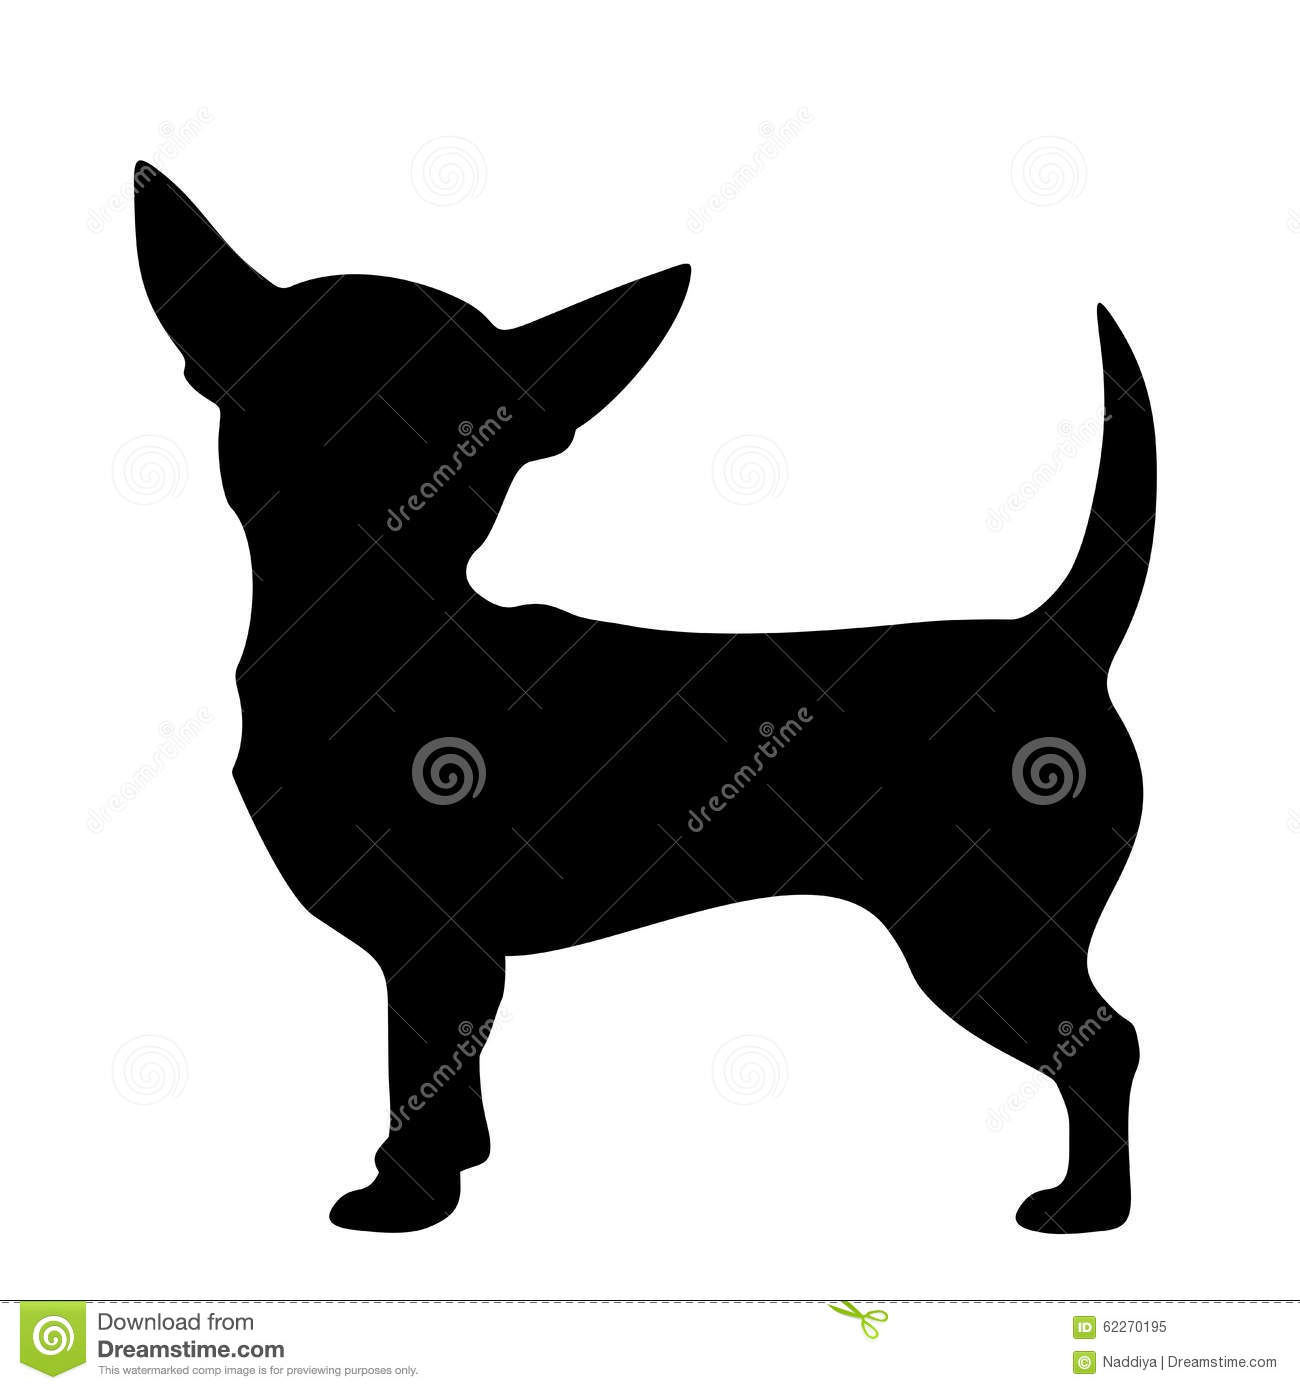 More similar stock images of ` Chihuahua dog. Vector black silhouette ...